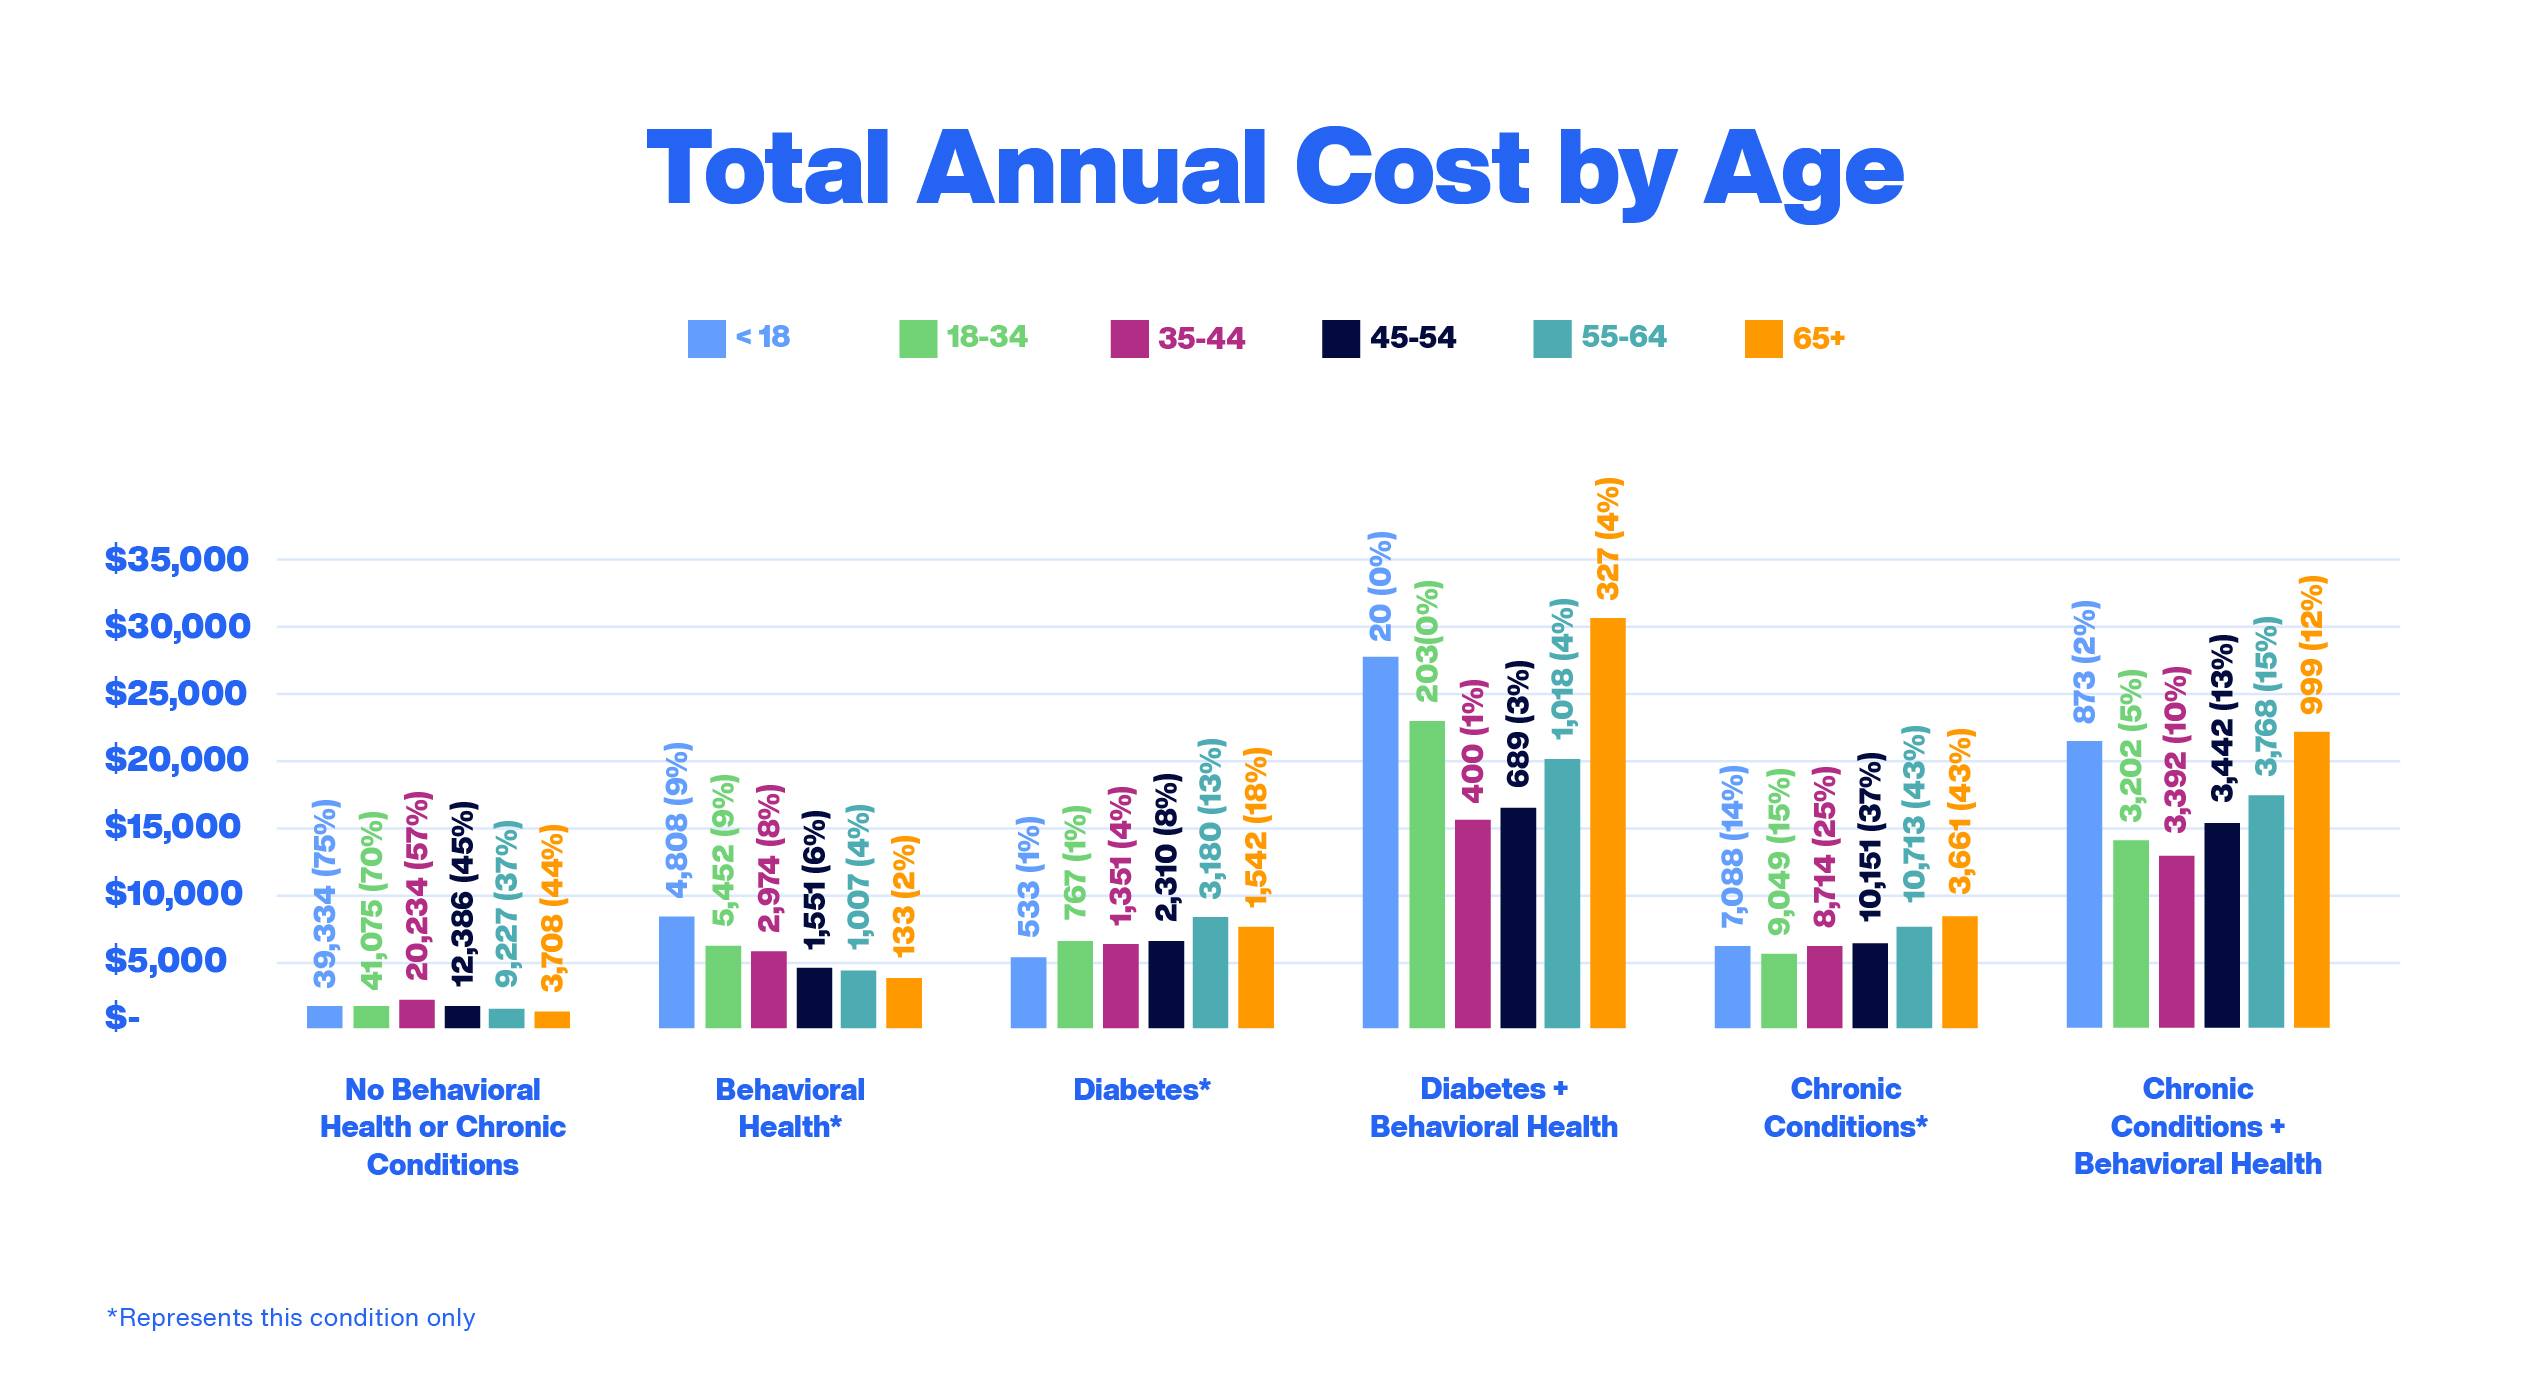 Total Annual Cost by Age- Image